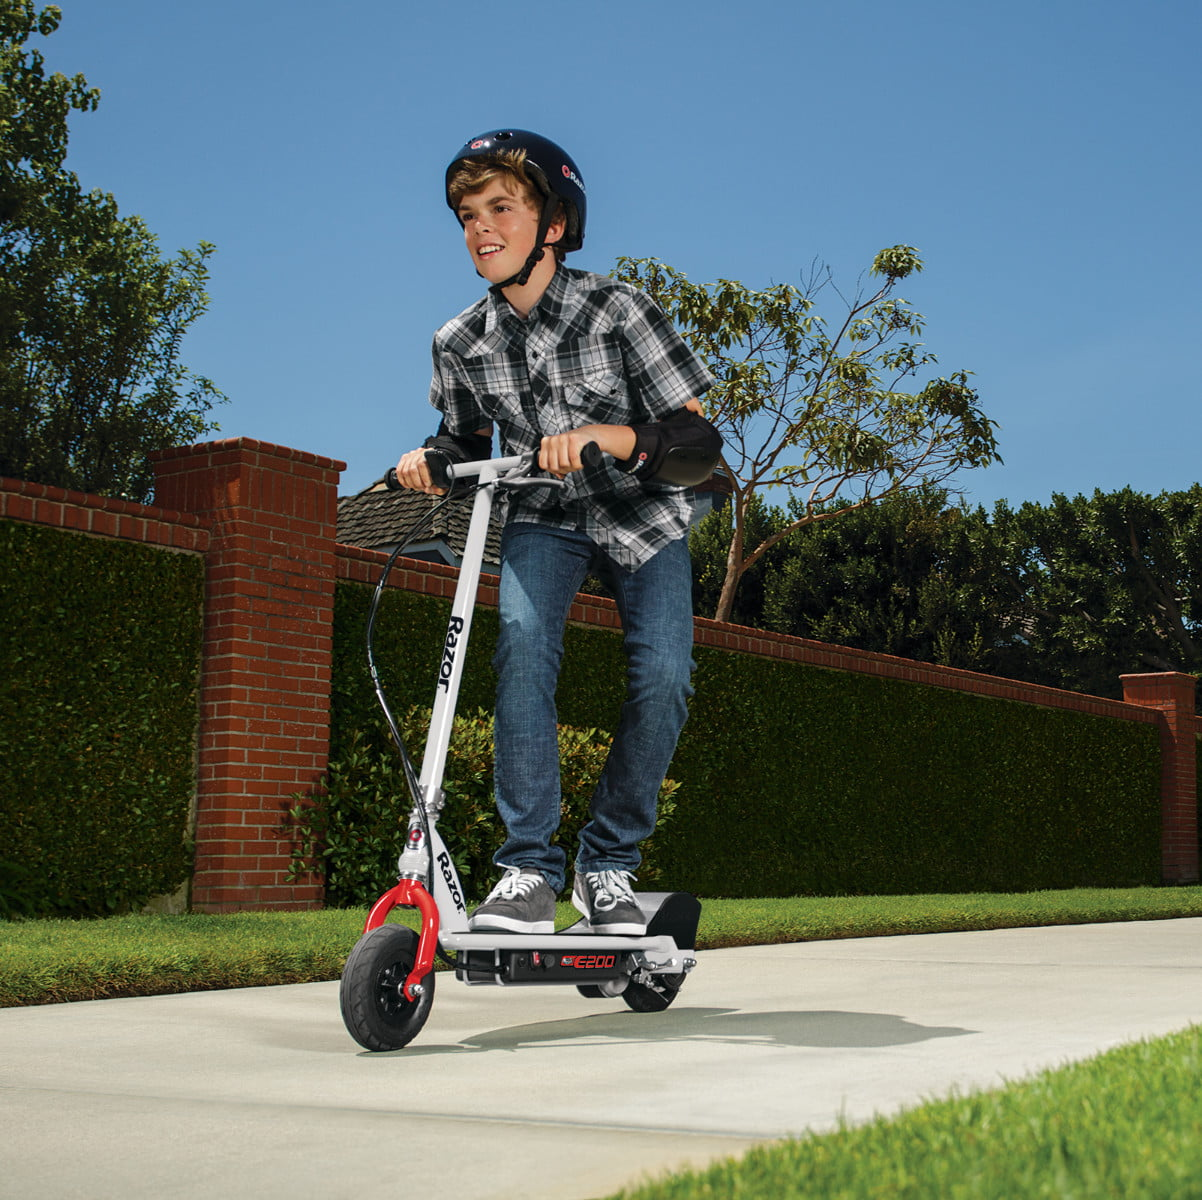 walmart slashes prices on electric bikes and razor e scooters for labor day e200 scooter